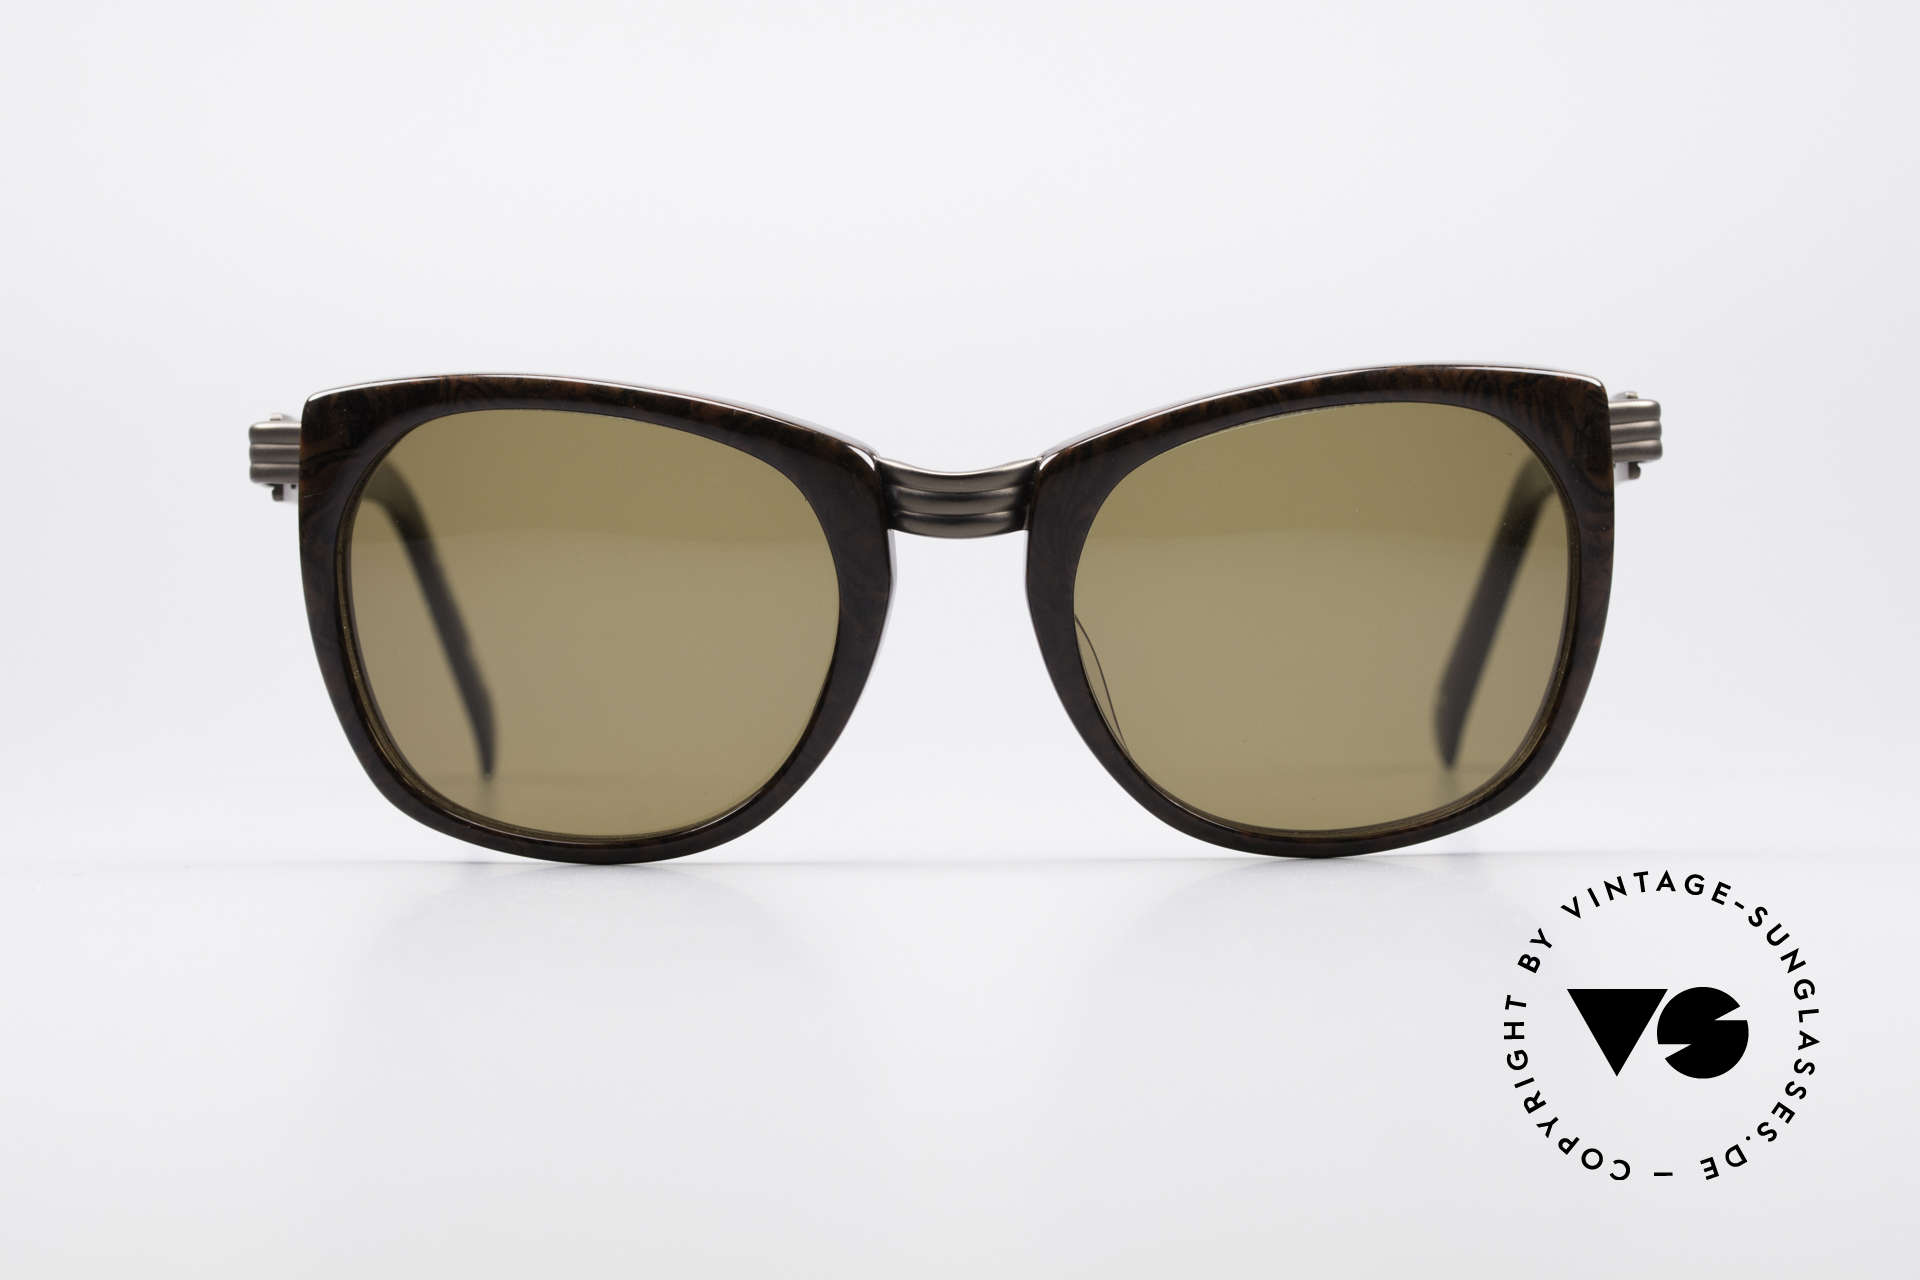 """Jean Paul Gaultier 56-0272 Steampunk JPG Sunglasses, striking frame construction """"steampunk style"""", Made for Men and Women"""